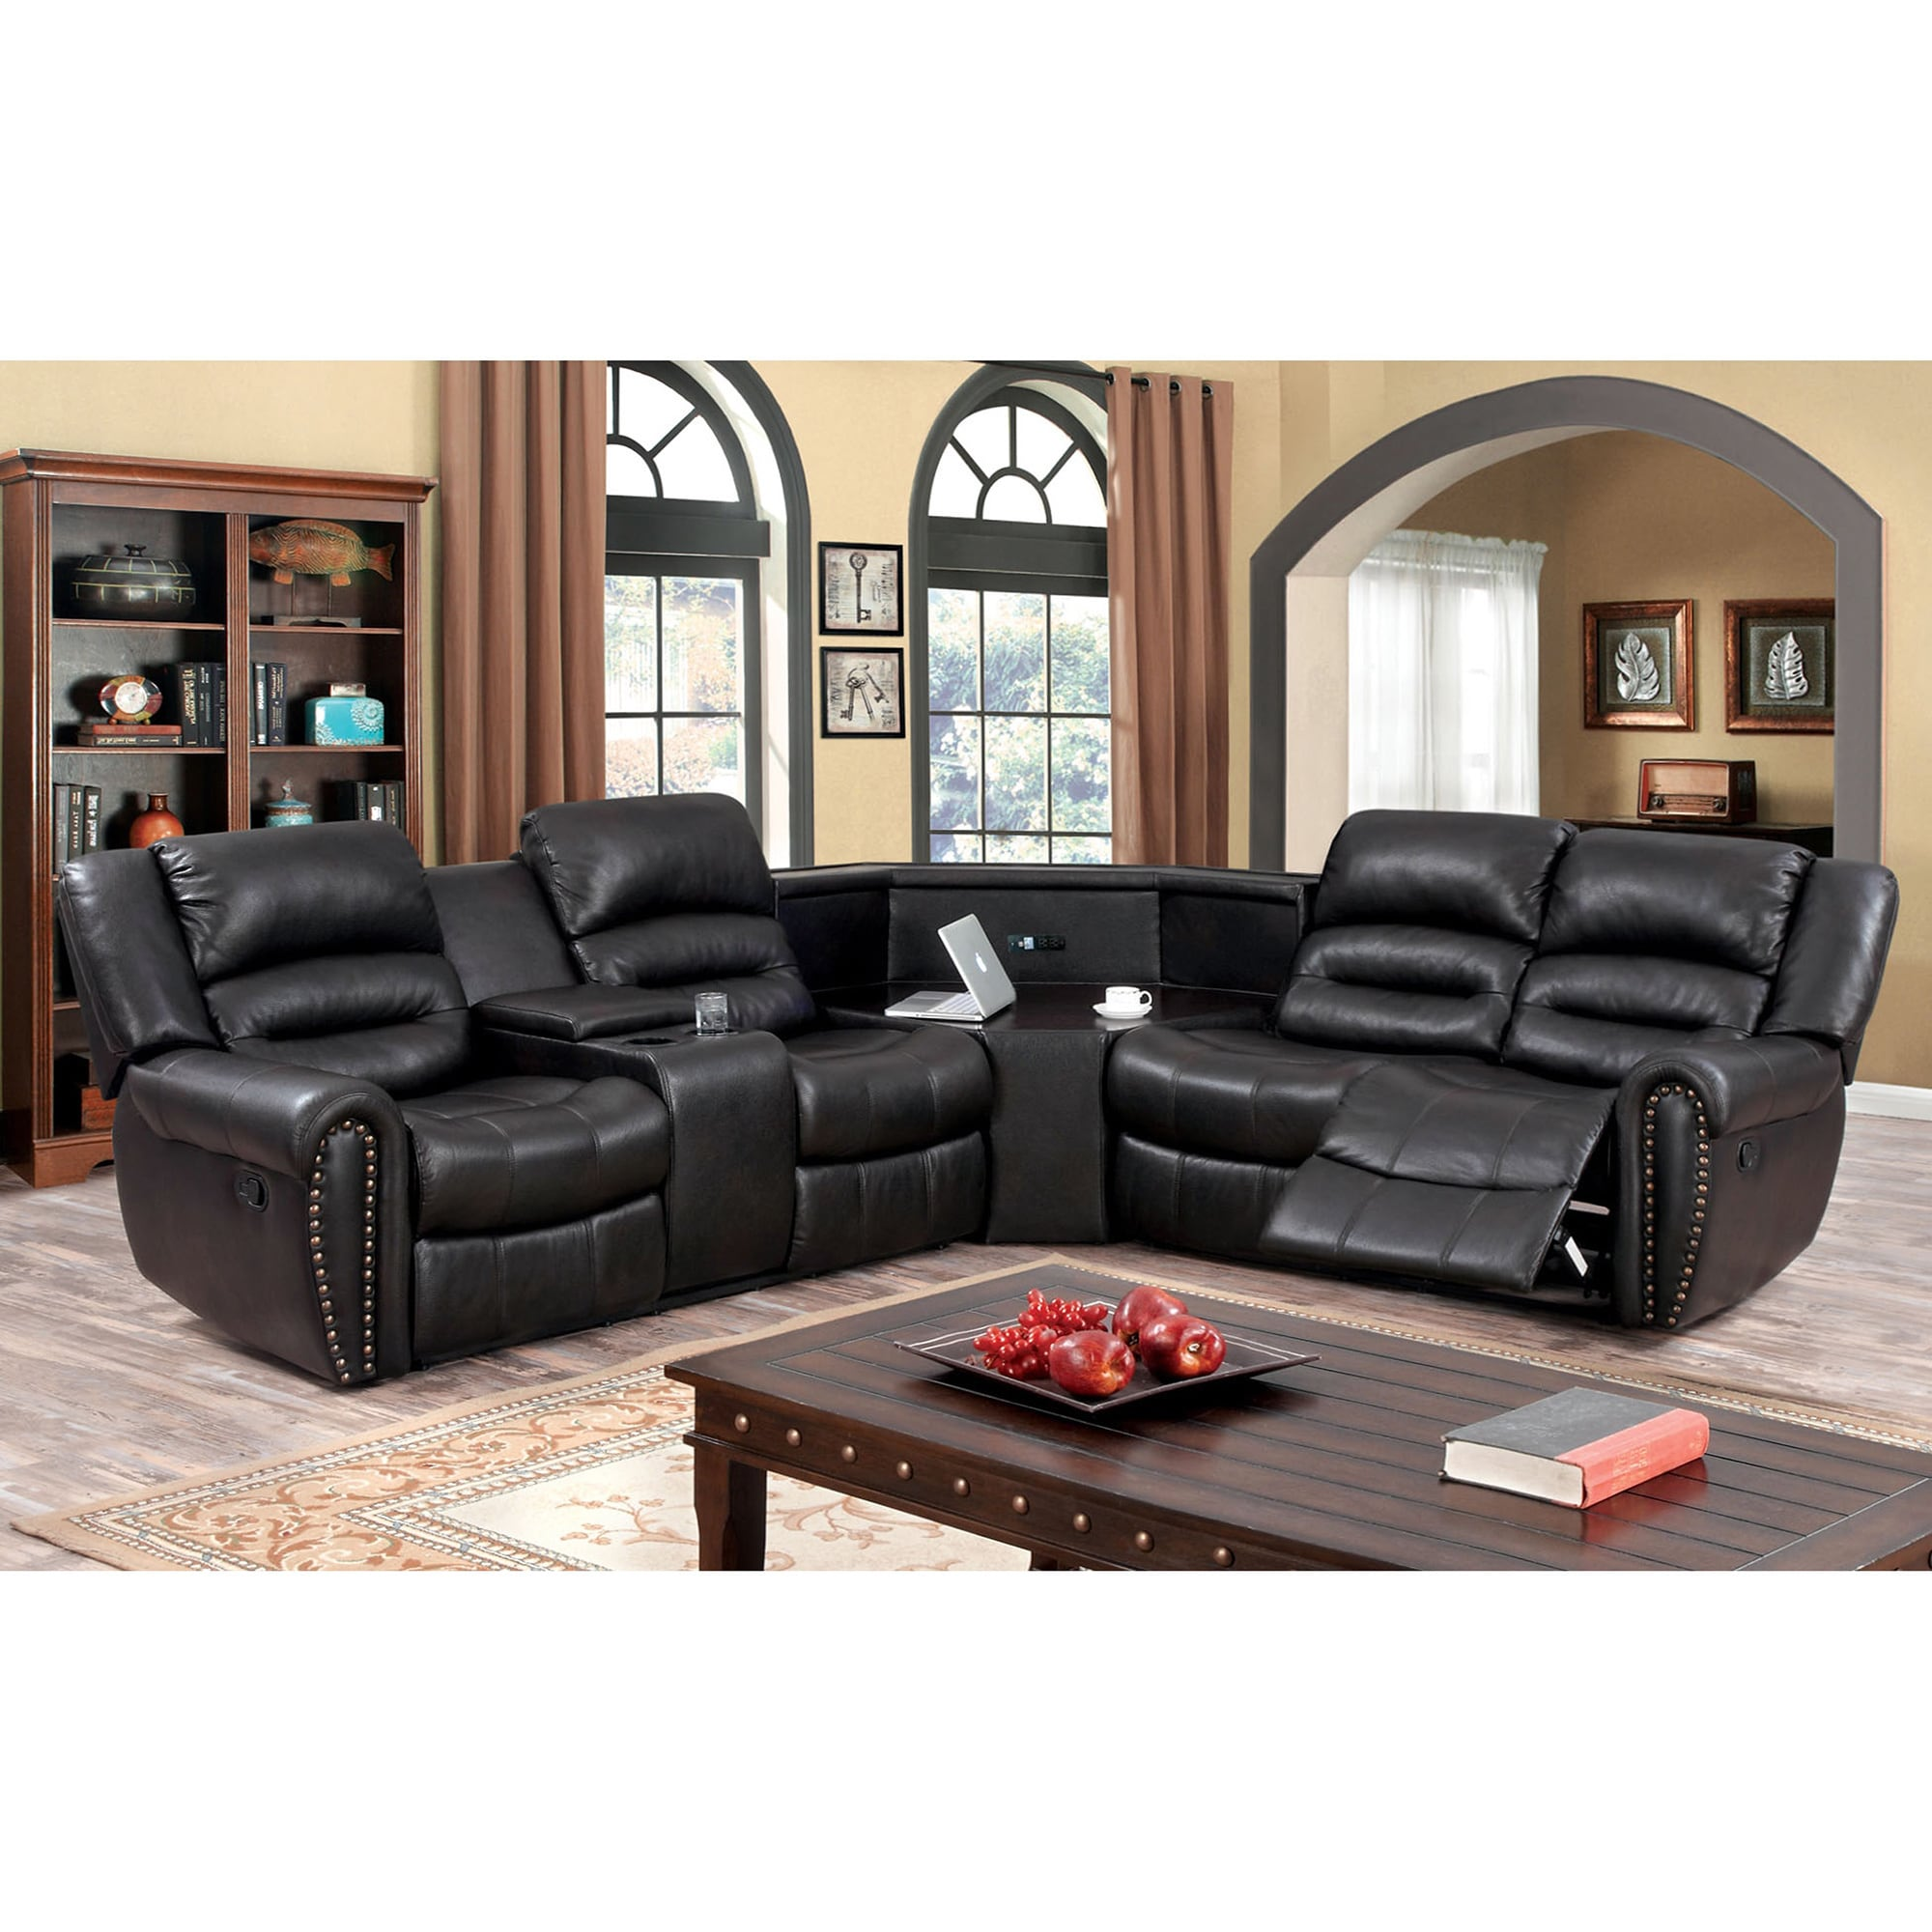 Sectional sofas with recliners and cup holders Sofas